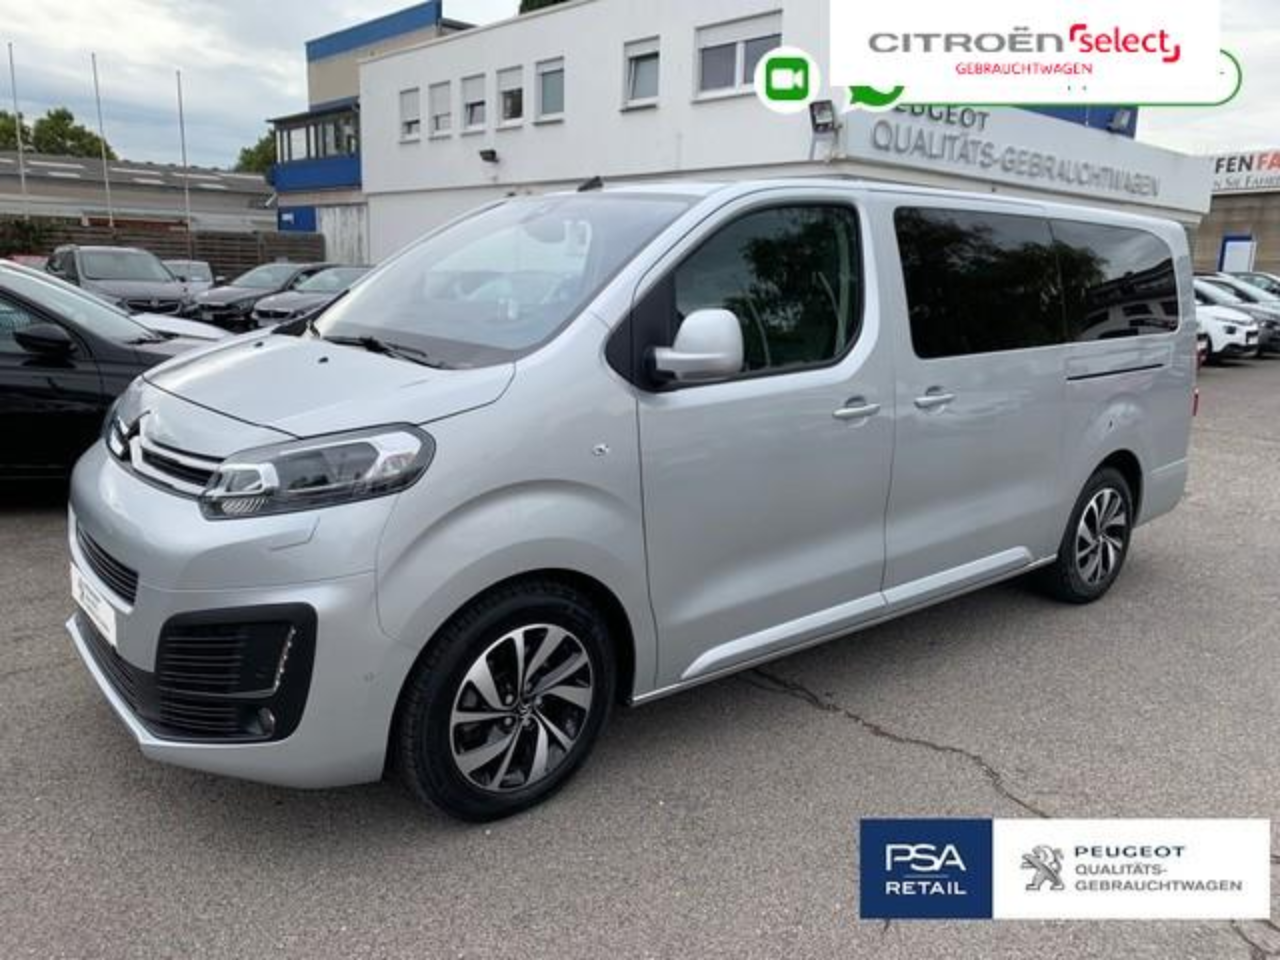 Citroën Spacetourer XL 2.0 BlueHDi 180 EAT8 Shine e.Turen